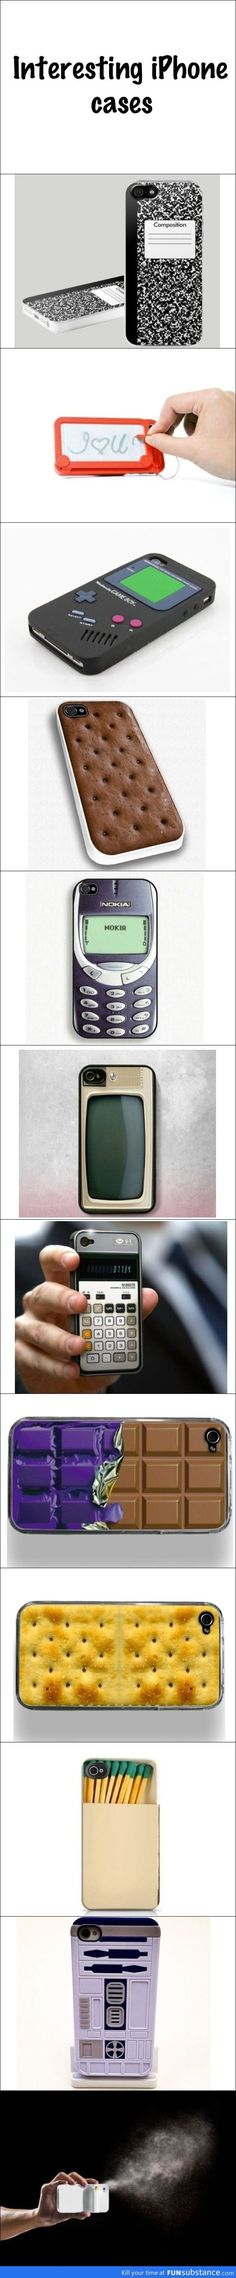 Interesting iPhone cases